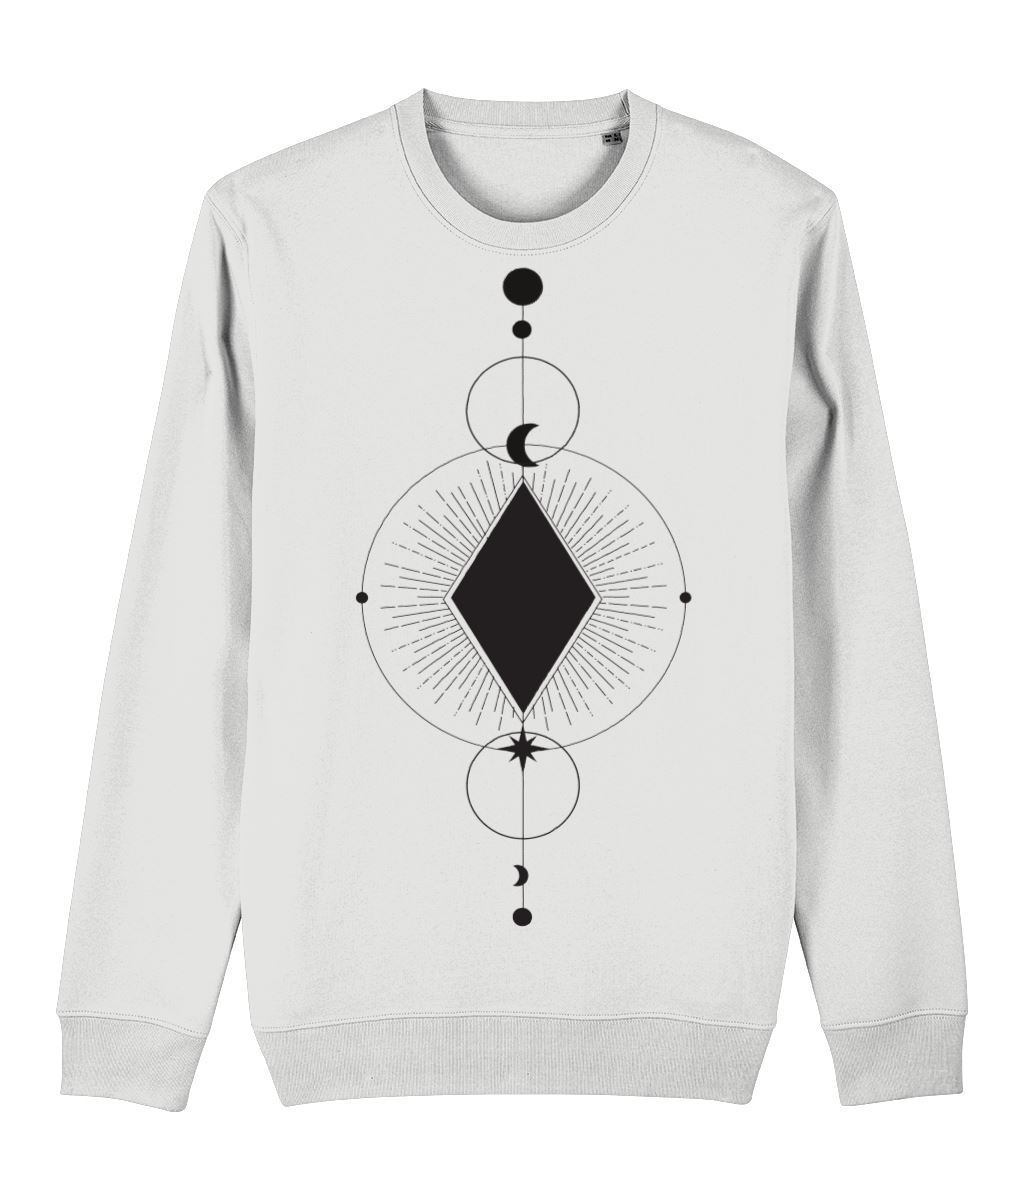 Geometric Alchemy Sweatshirt Clothing IndianBelieves White X-Small